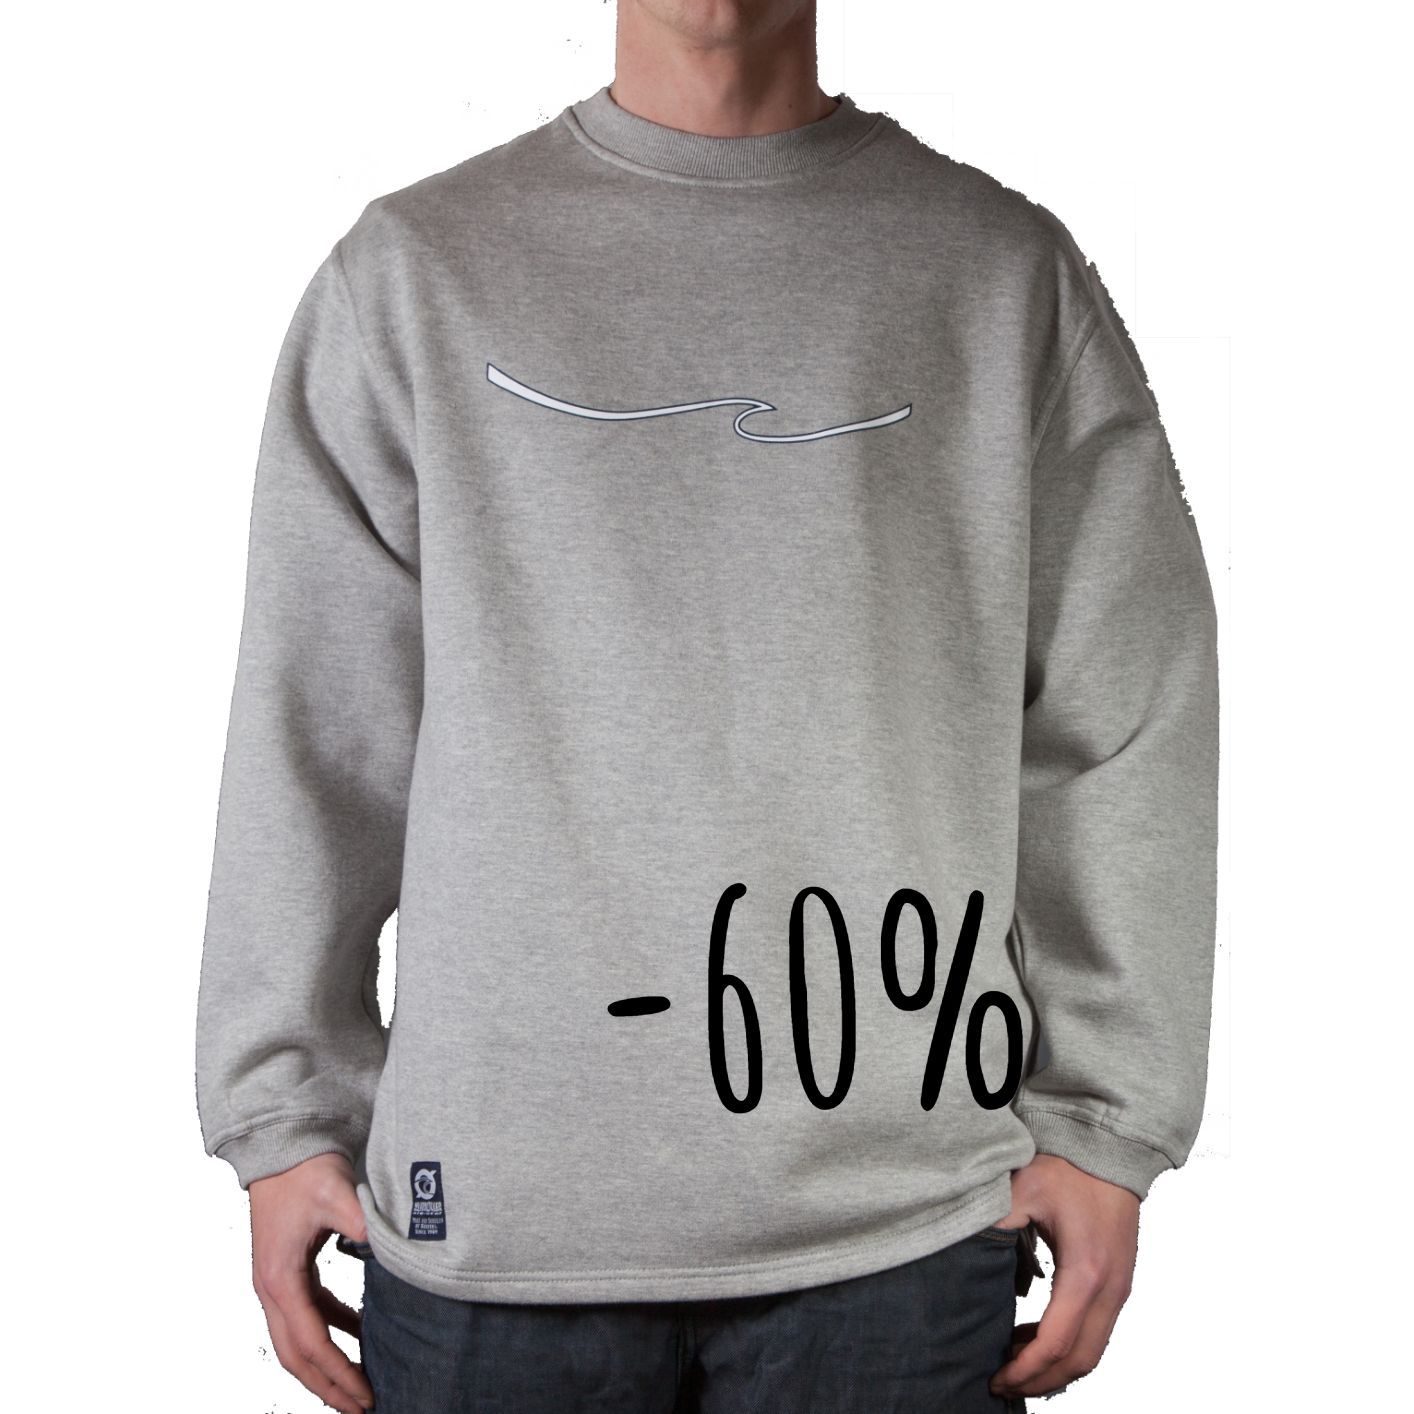 Sweatshirt Ørhage Light grey, Dark grey and Navy.